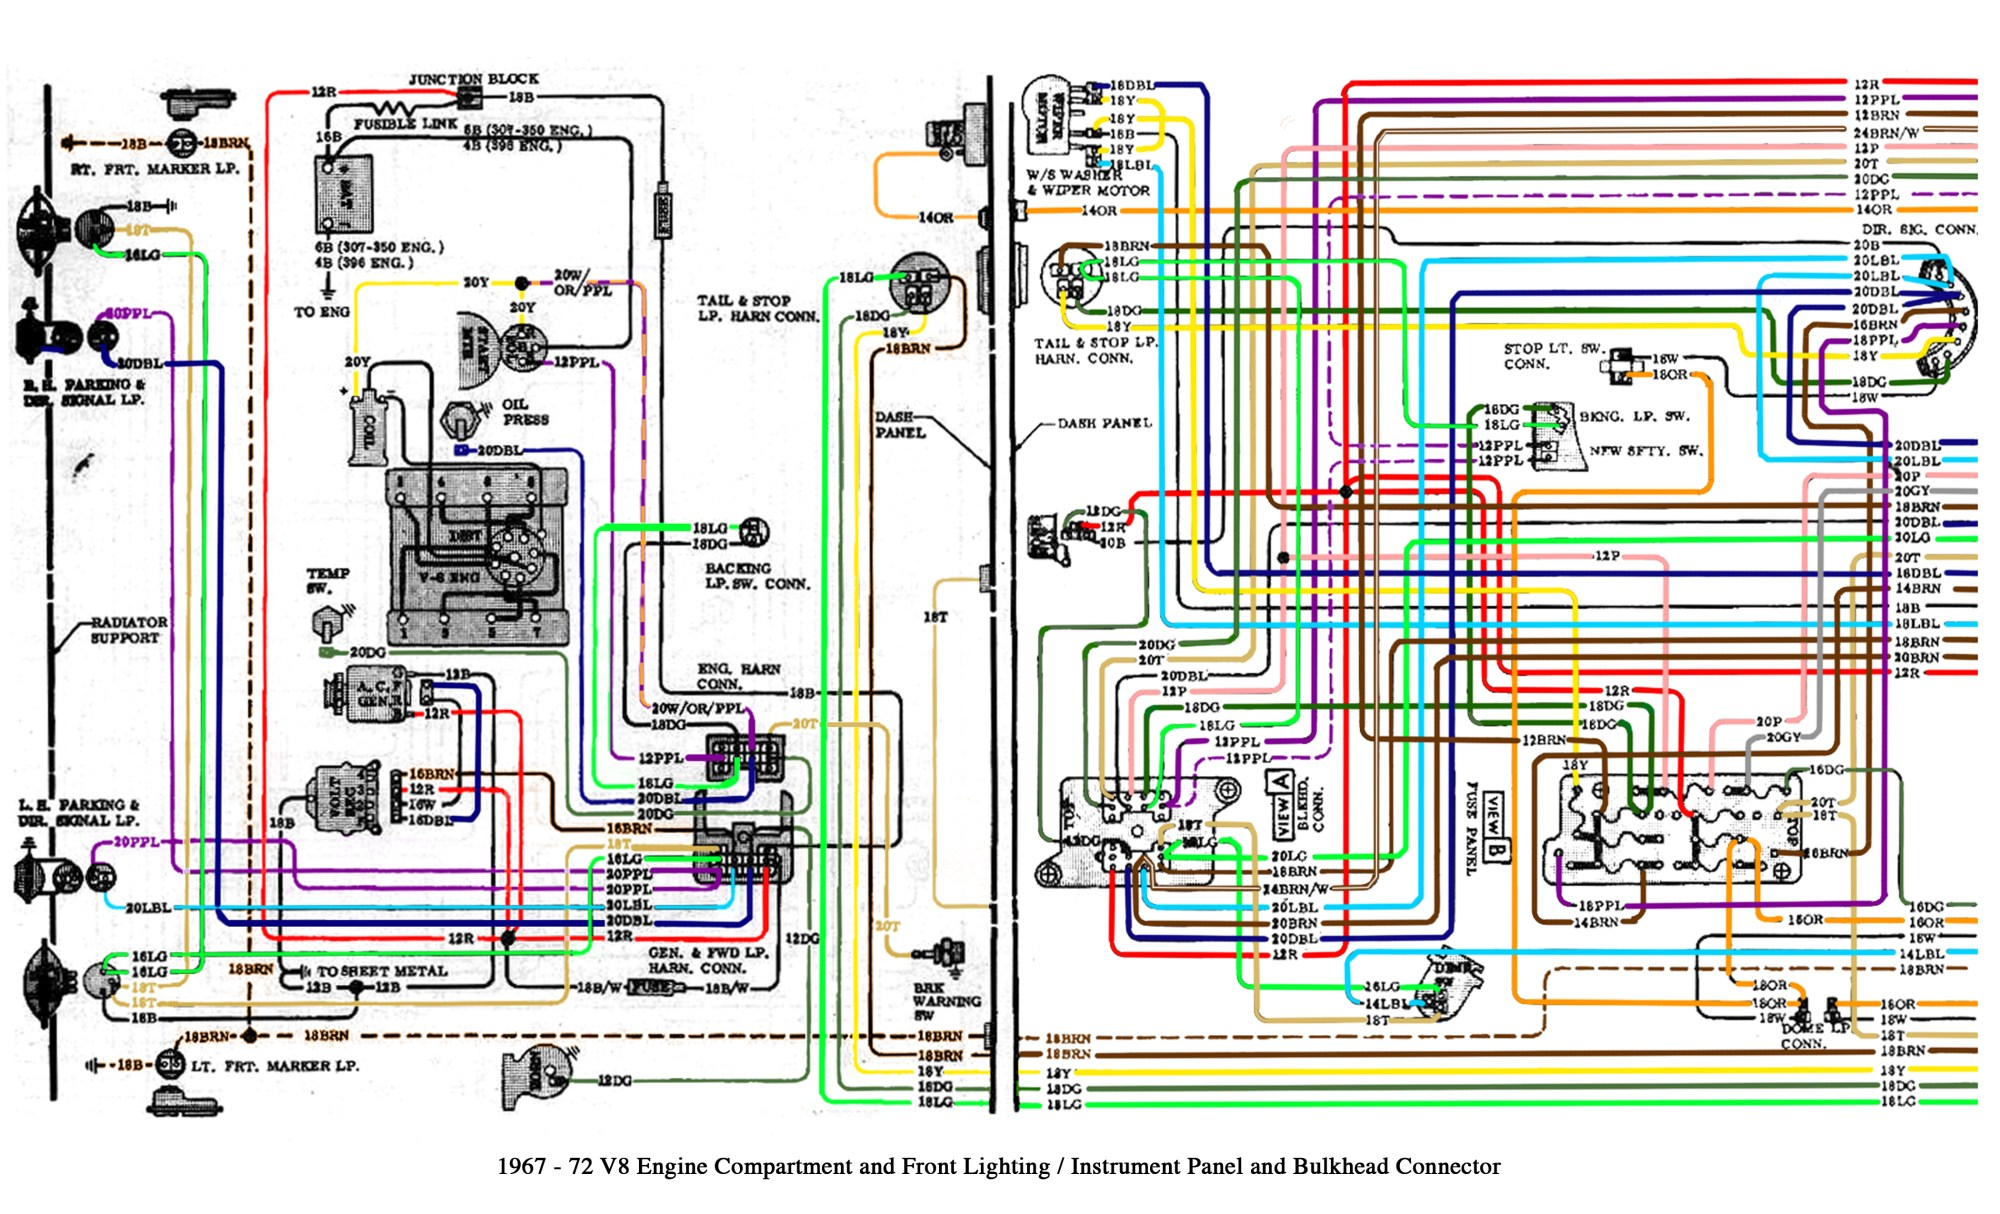 hight resolution of 86 gmc pickup fuse box schema diagram database86 gmc pickup fuse box wiring library 1975 gmc